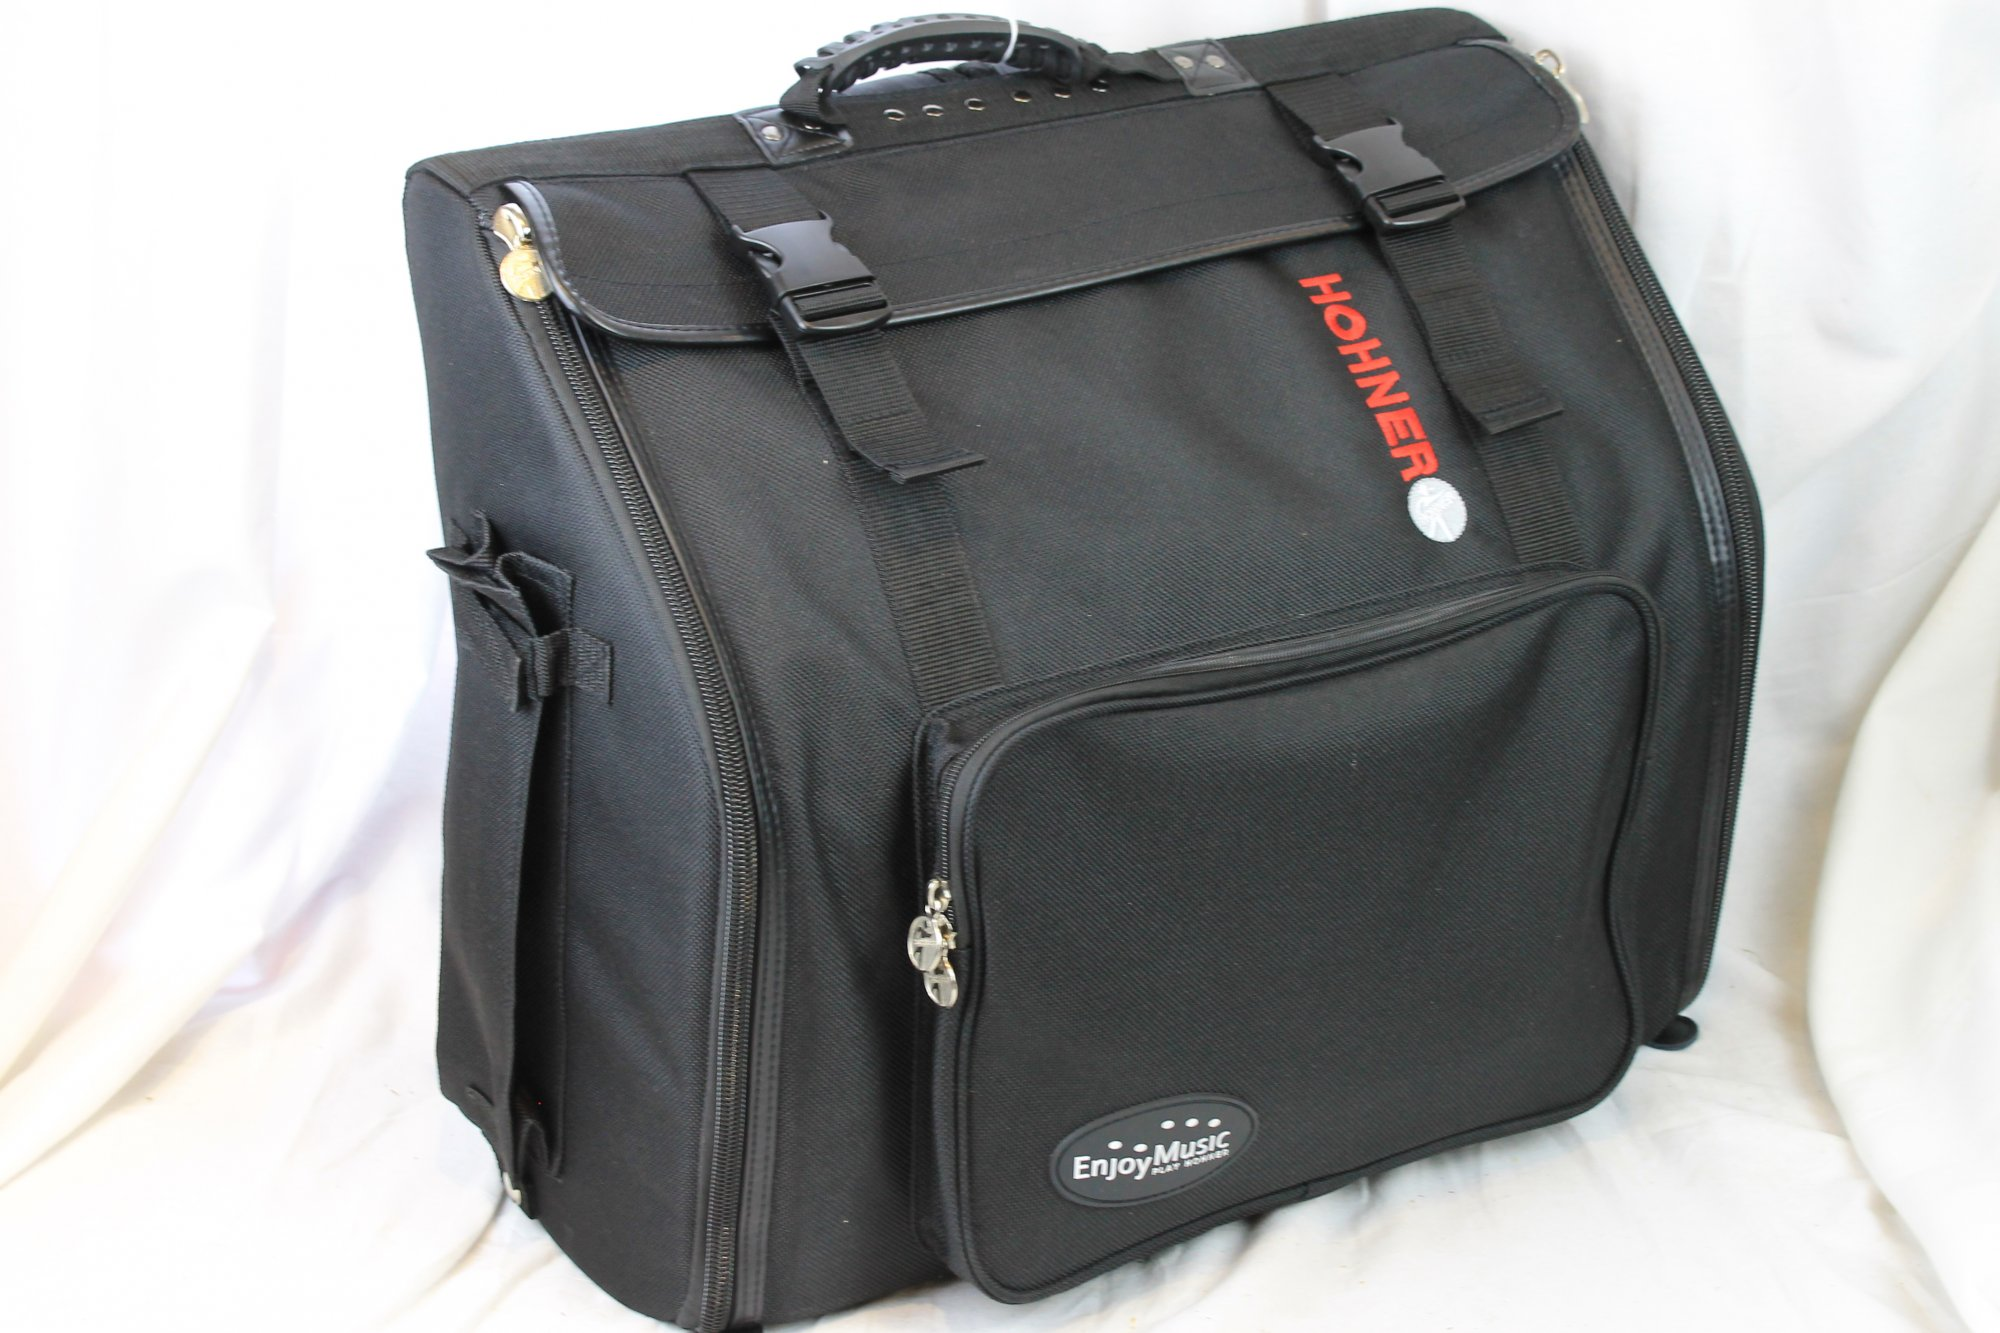 NEW Black Hohner Gig Bag for Accordion 20.75 x 17.75 x 9 Large 96 and 120 Bass Piano Accordions